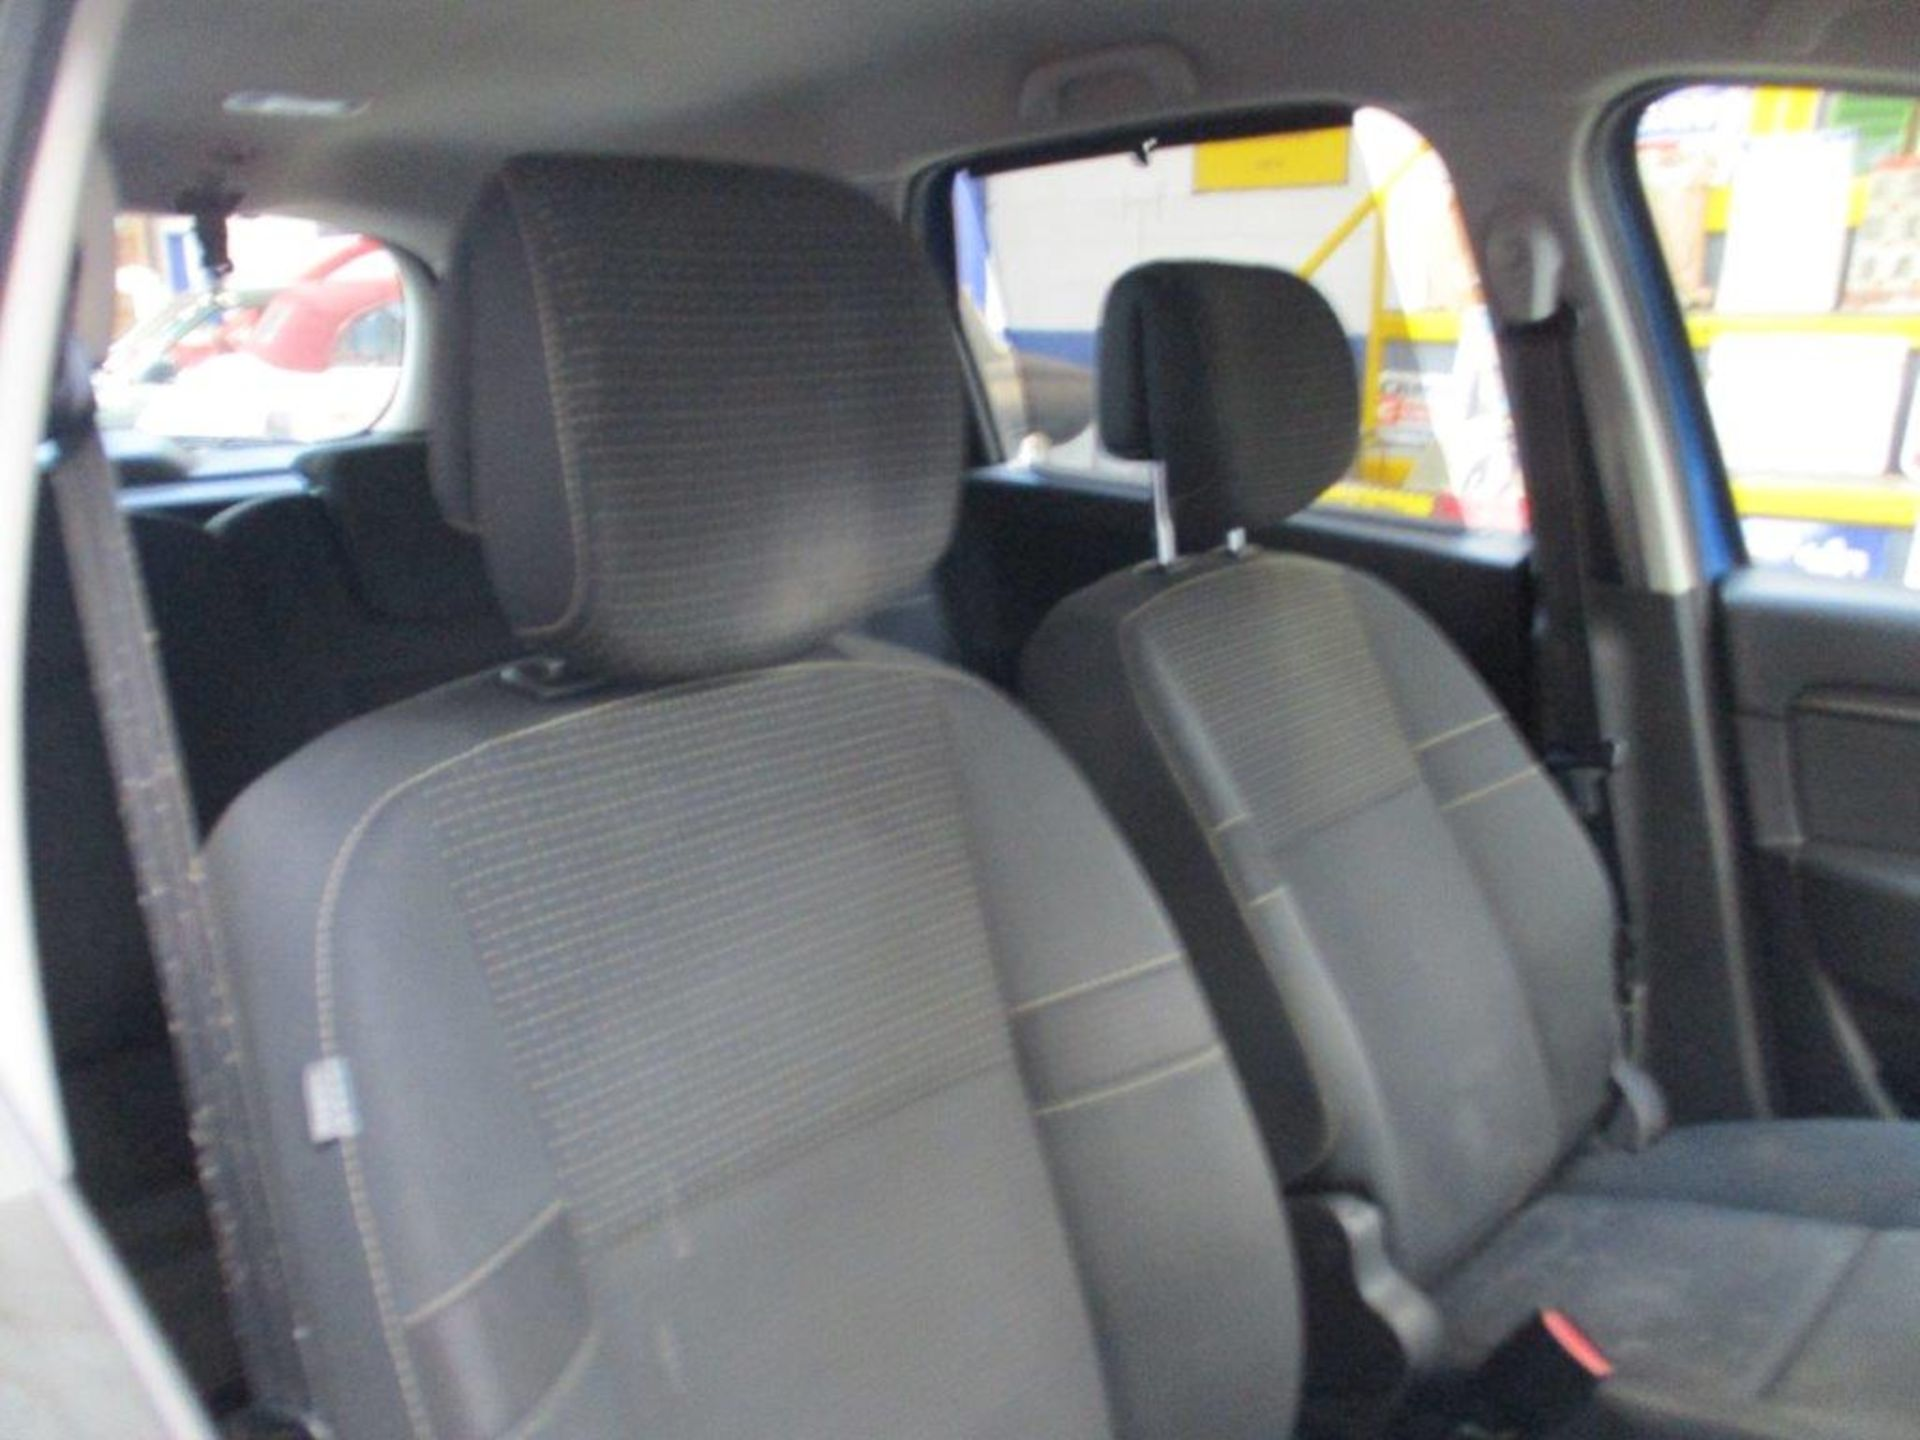 10 10 Renault Grd Scenic Dyn T-T - Image 19 of 21